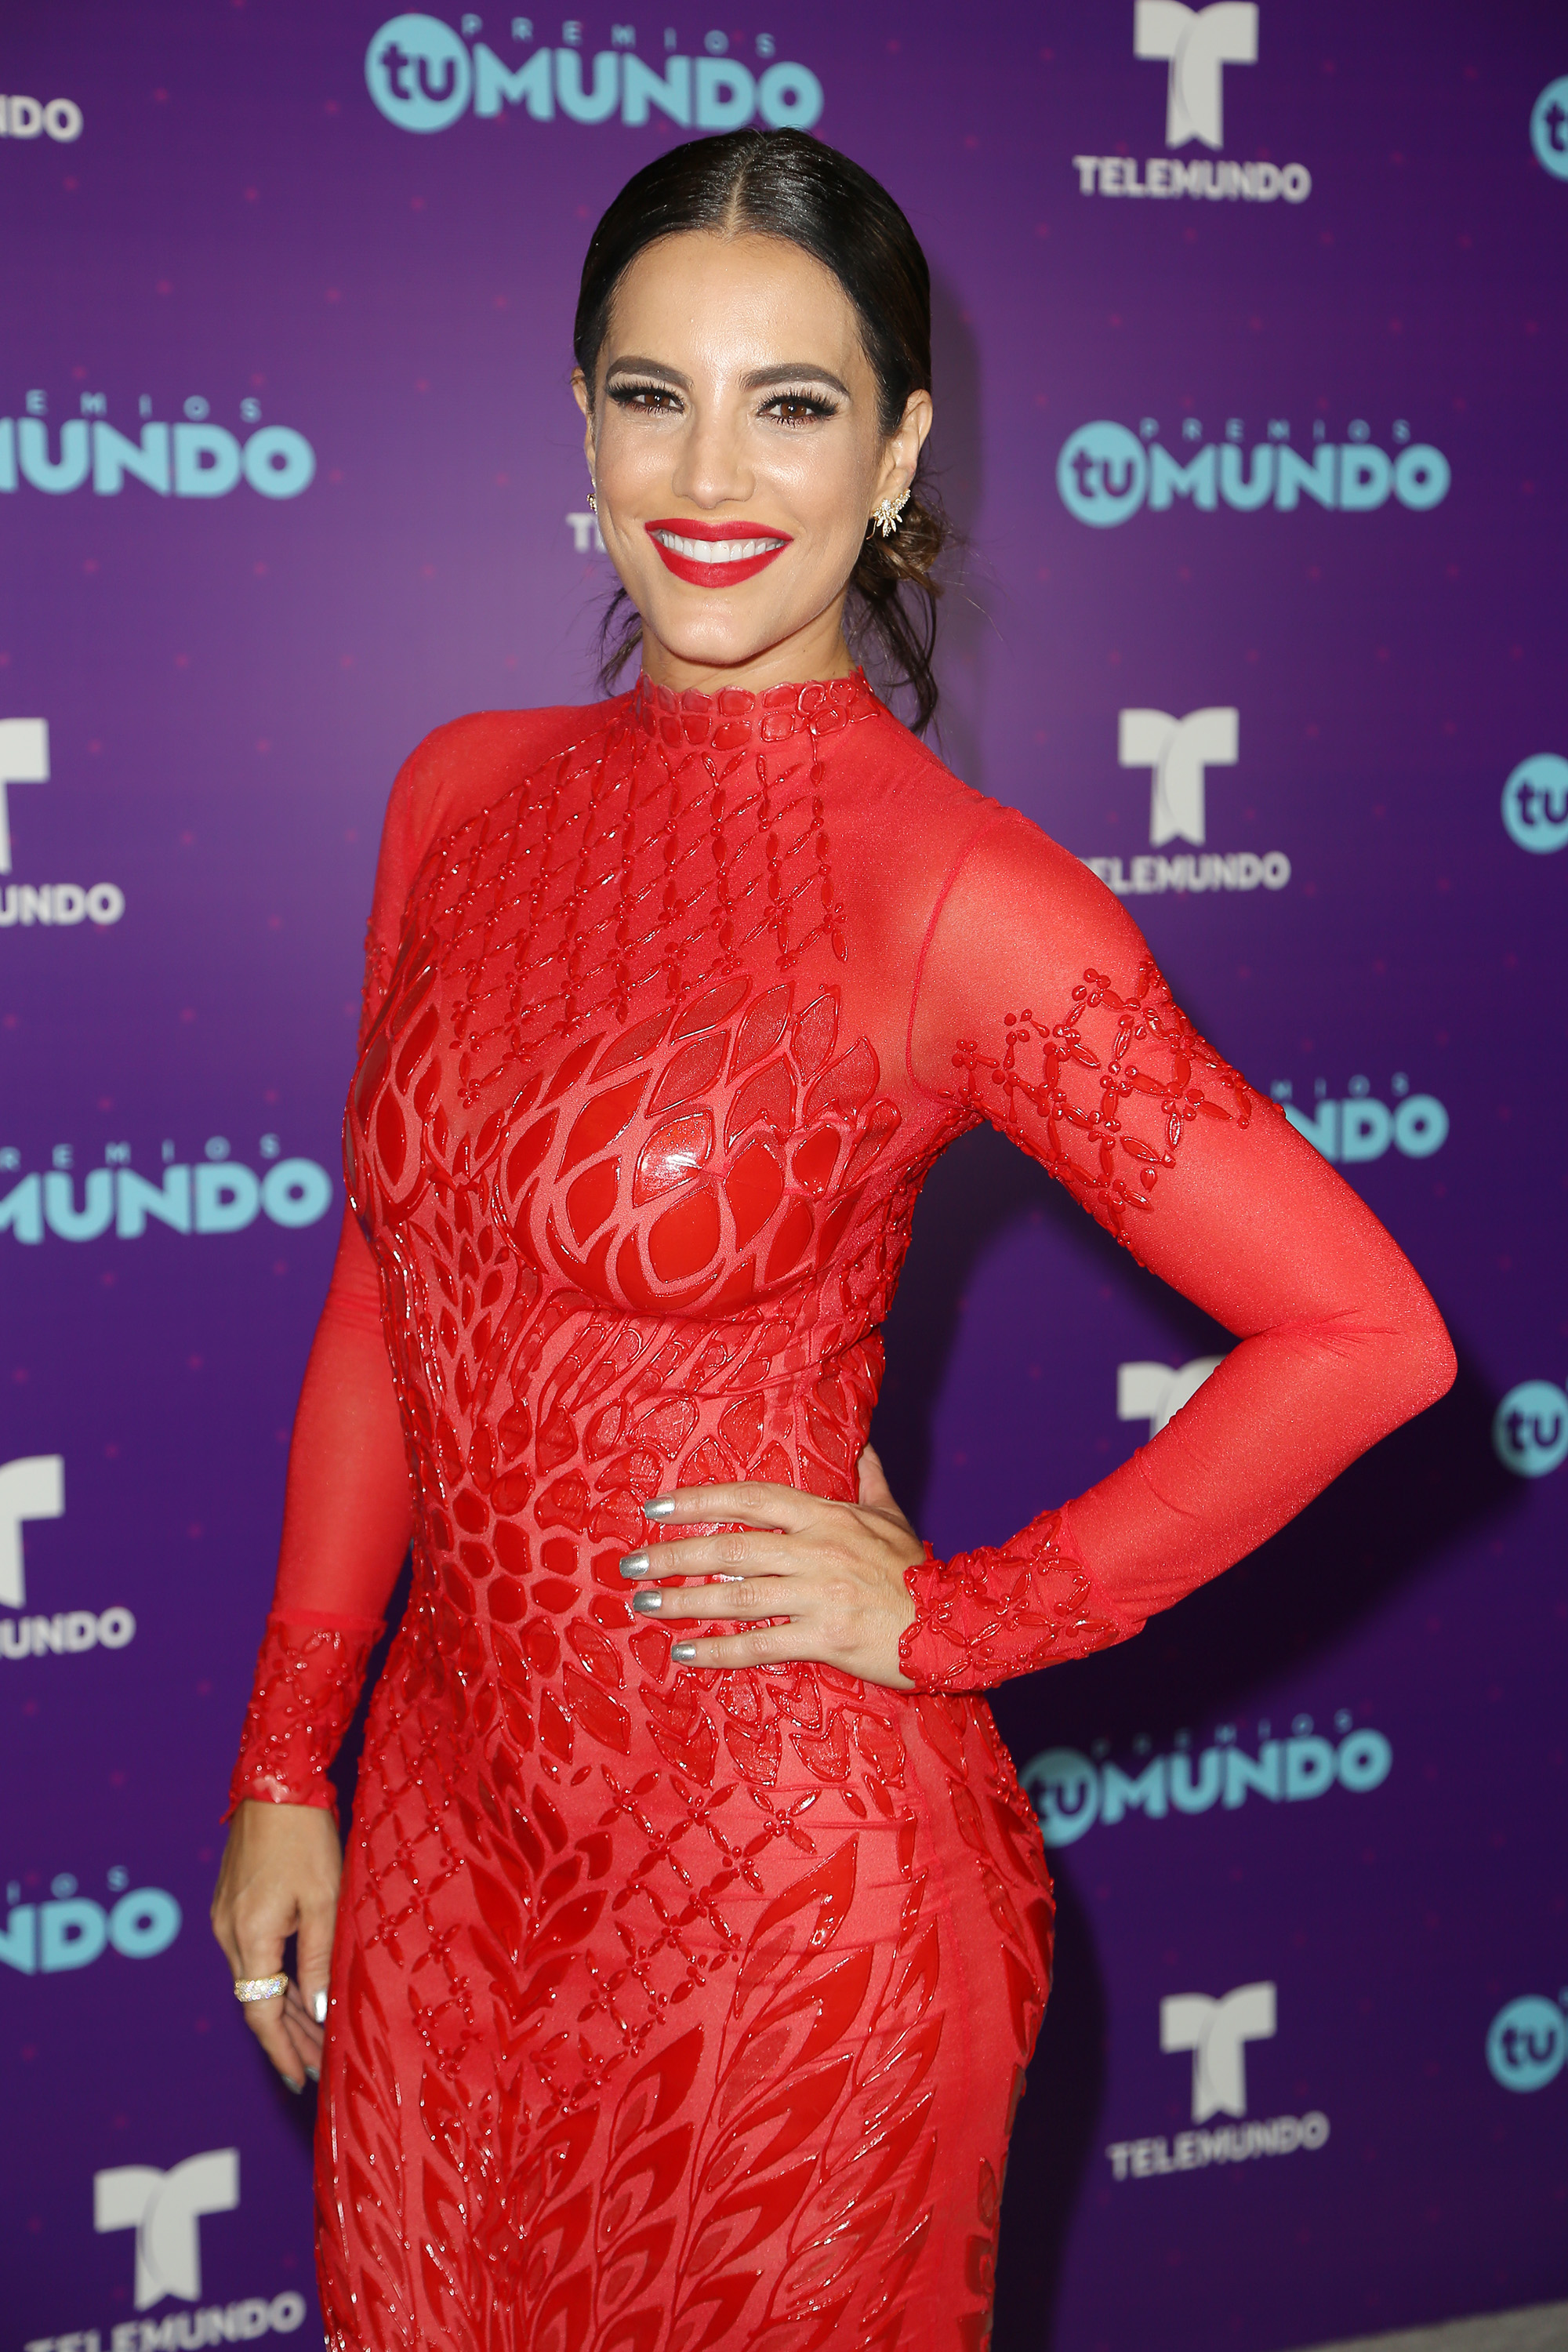 MIAMI, FL - AUGUST 25: Gaby Espino poses backstage at Telemundo's Premios Tu Mundo 'Your World' Awards at American Airlines Arena on August 25, 2016 in Miami, Florida. (Photo by Troy Rizzo/WireImage)